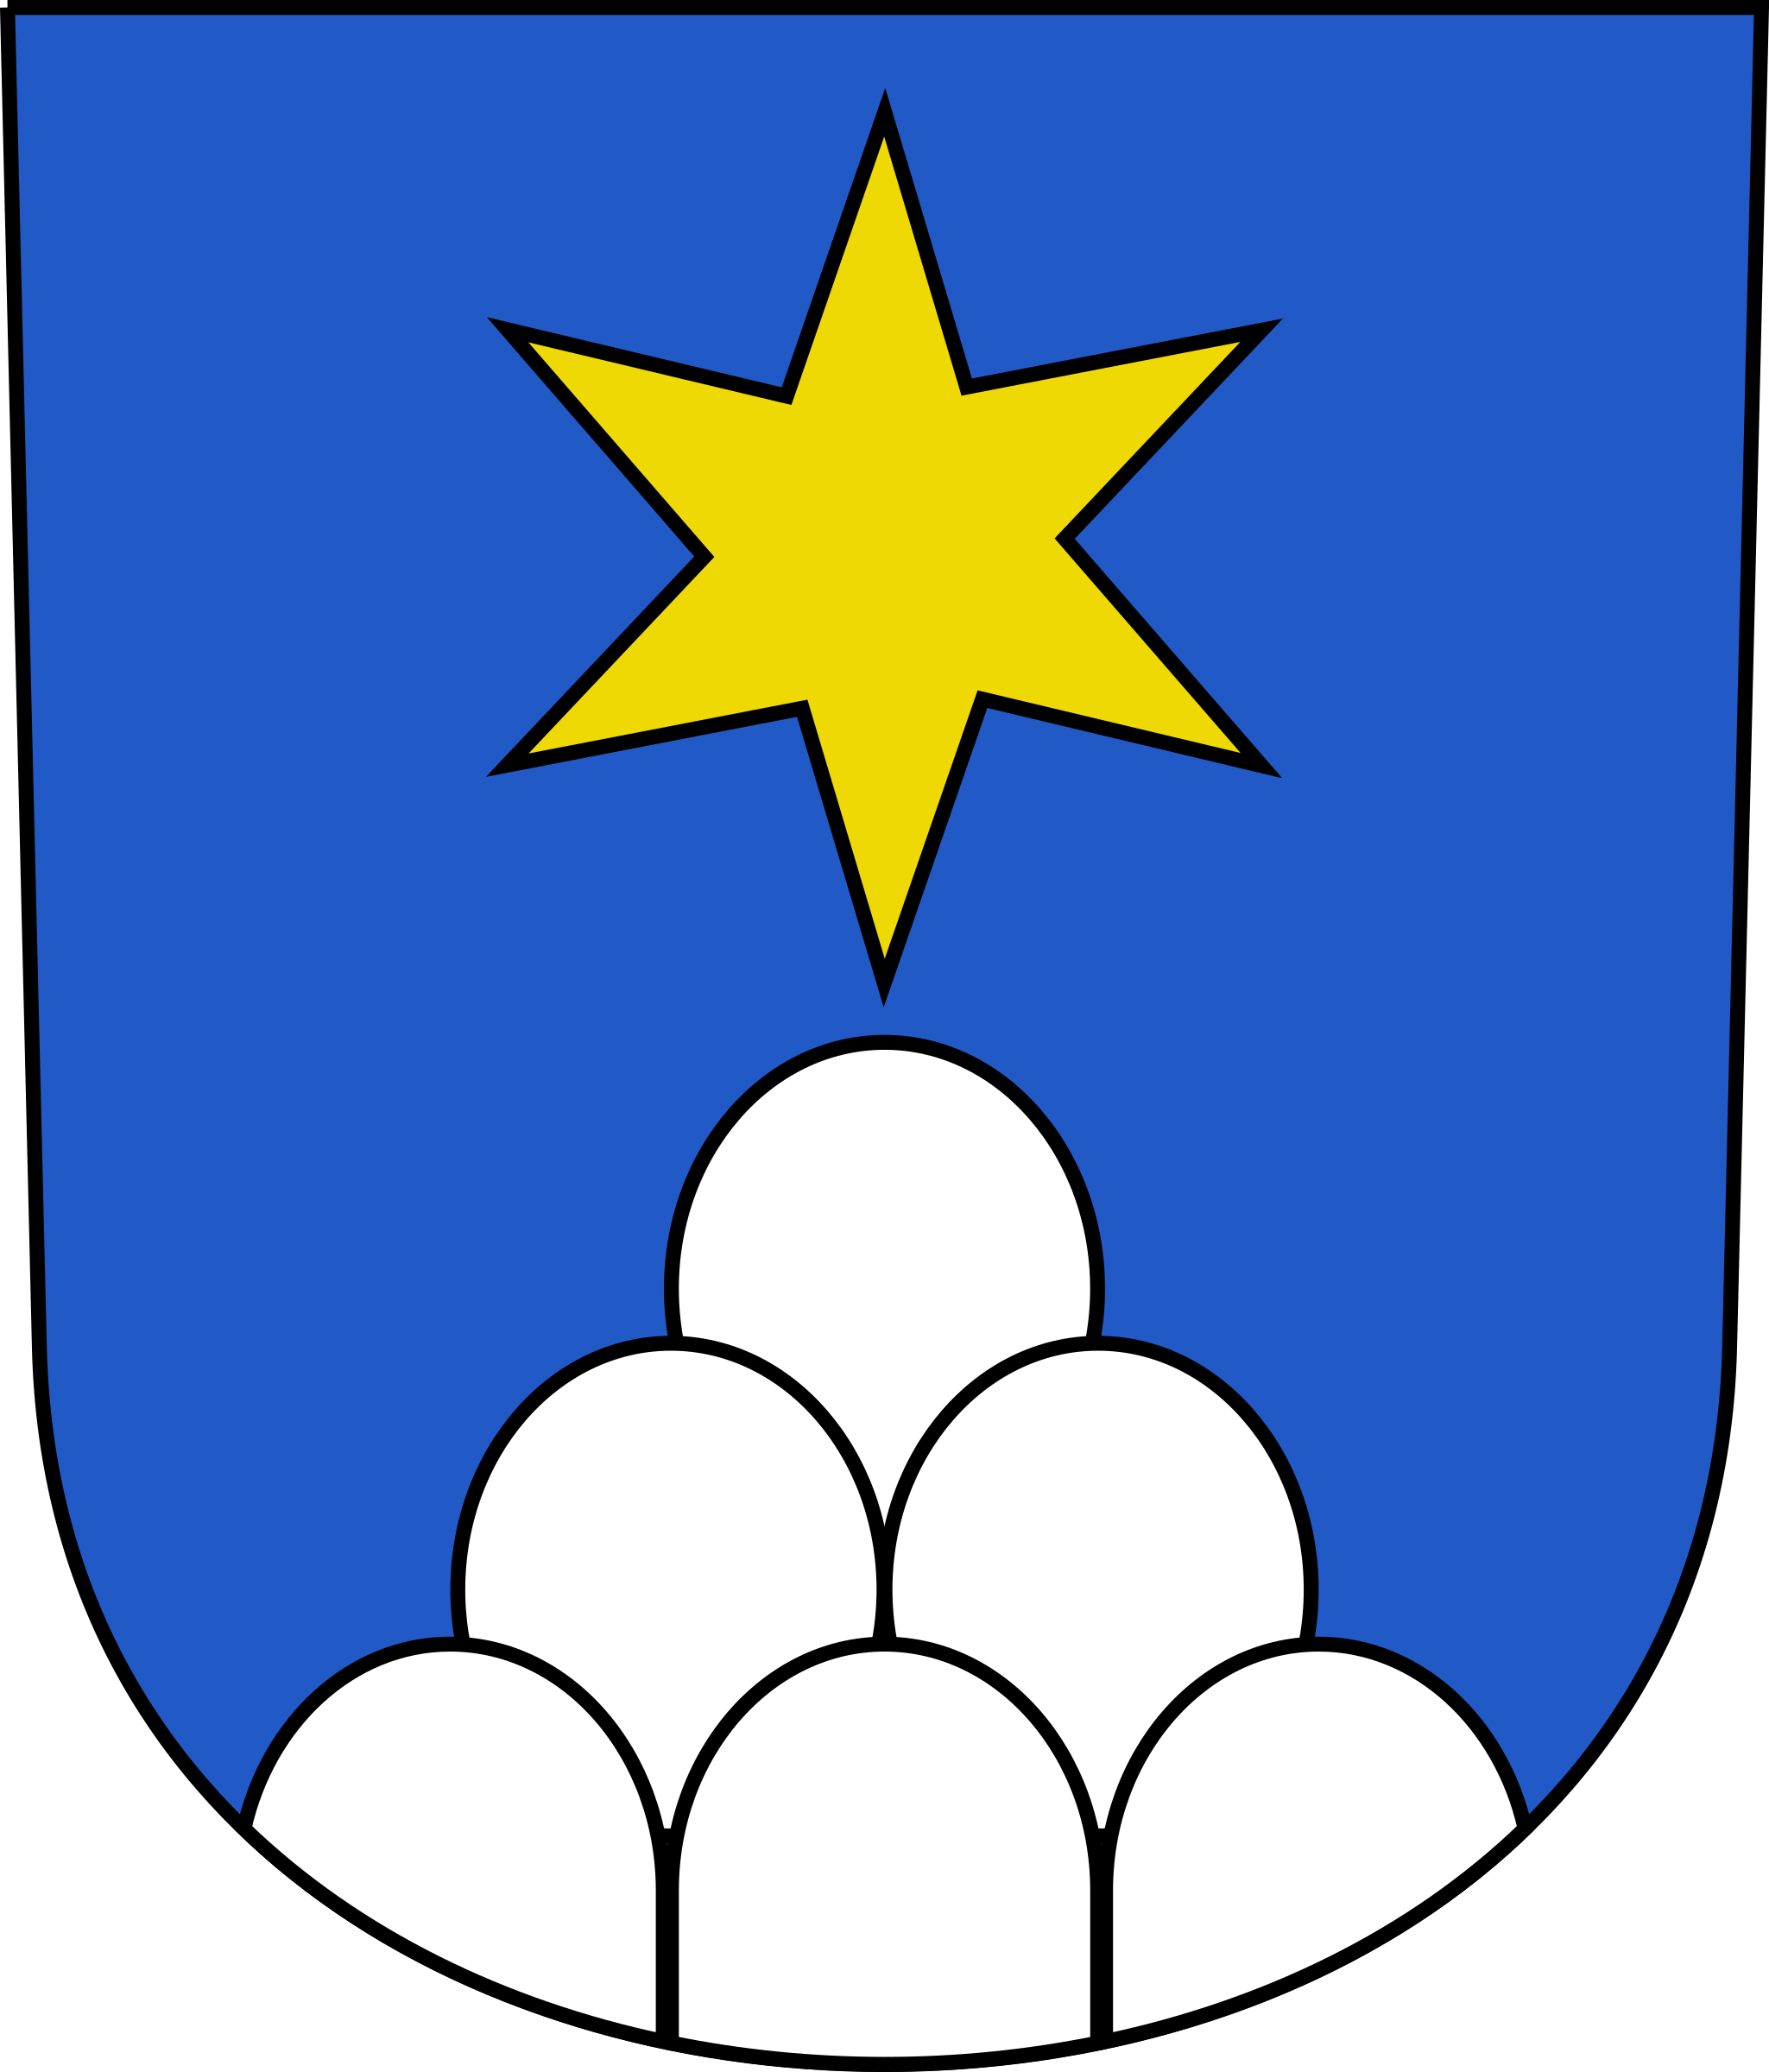 Sternenberg - Coat of arms by wipp